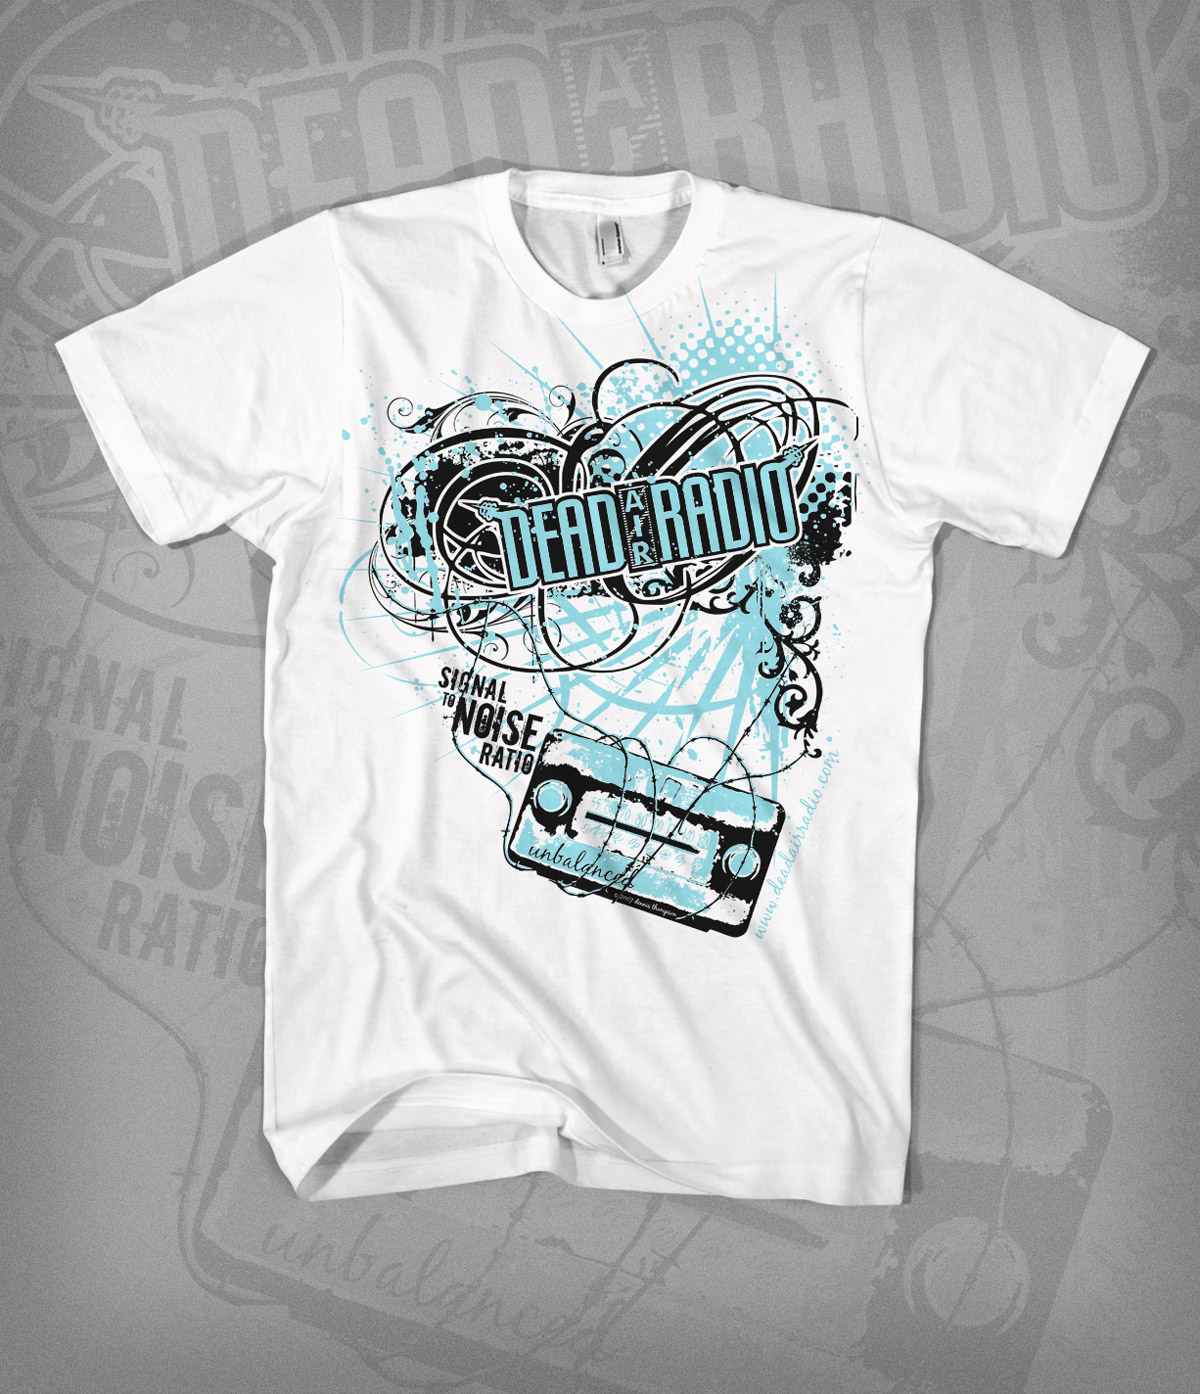 STNR tshirt design - white